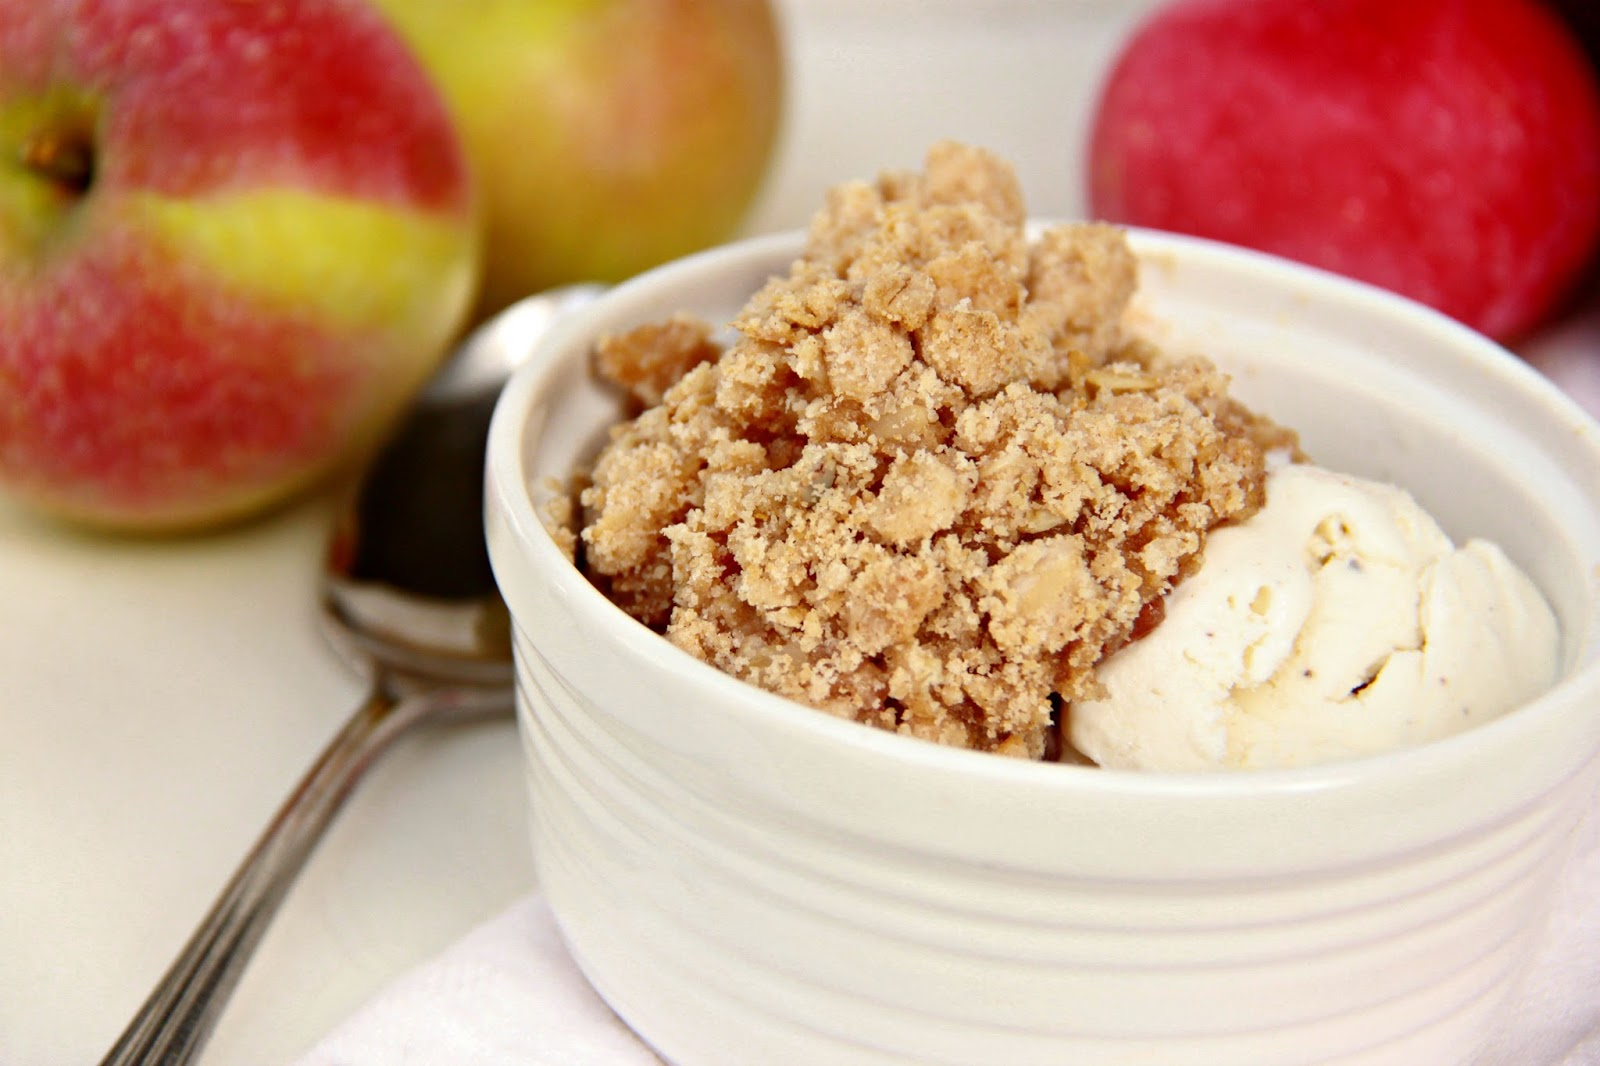 Apple Cobbler With Canned Apples And Cake Mix